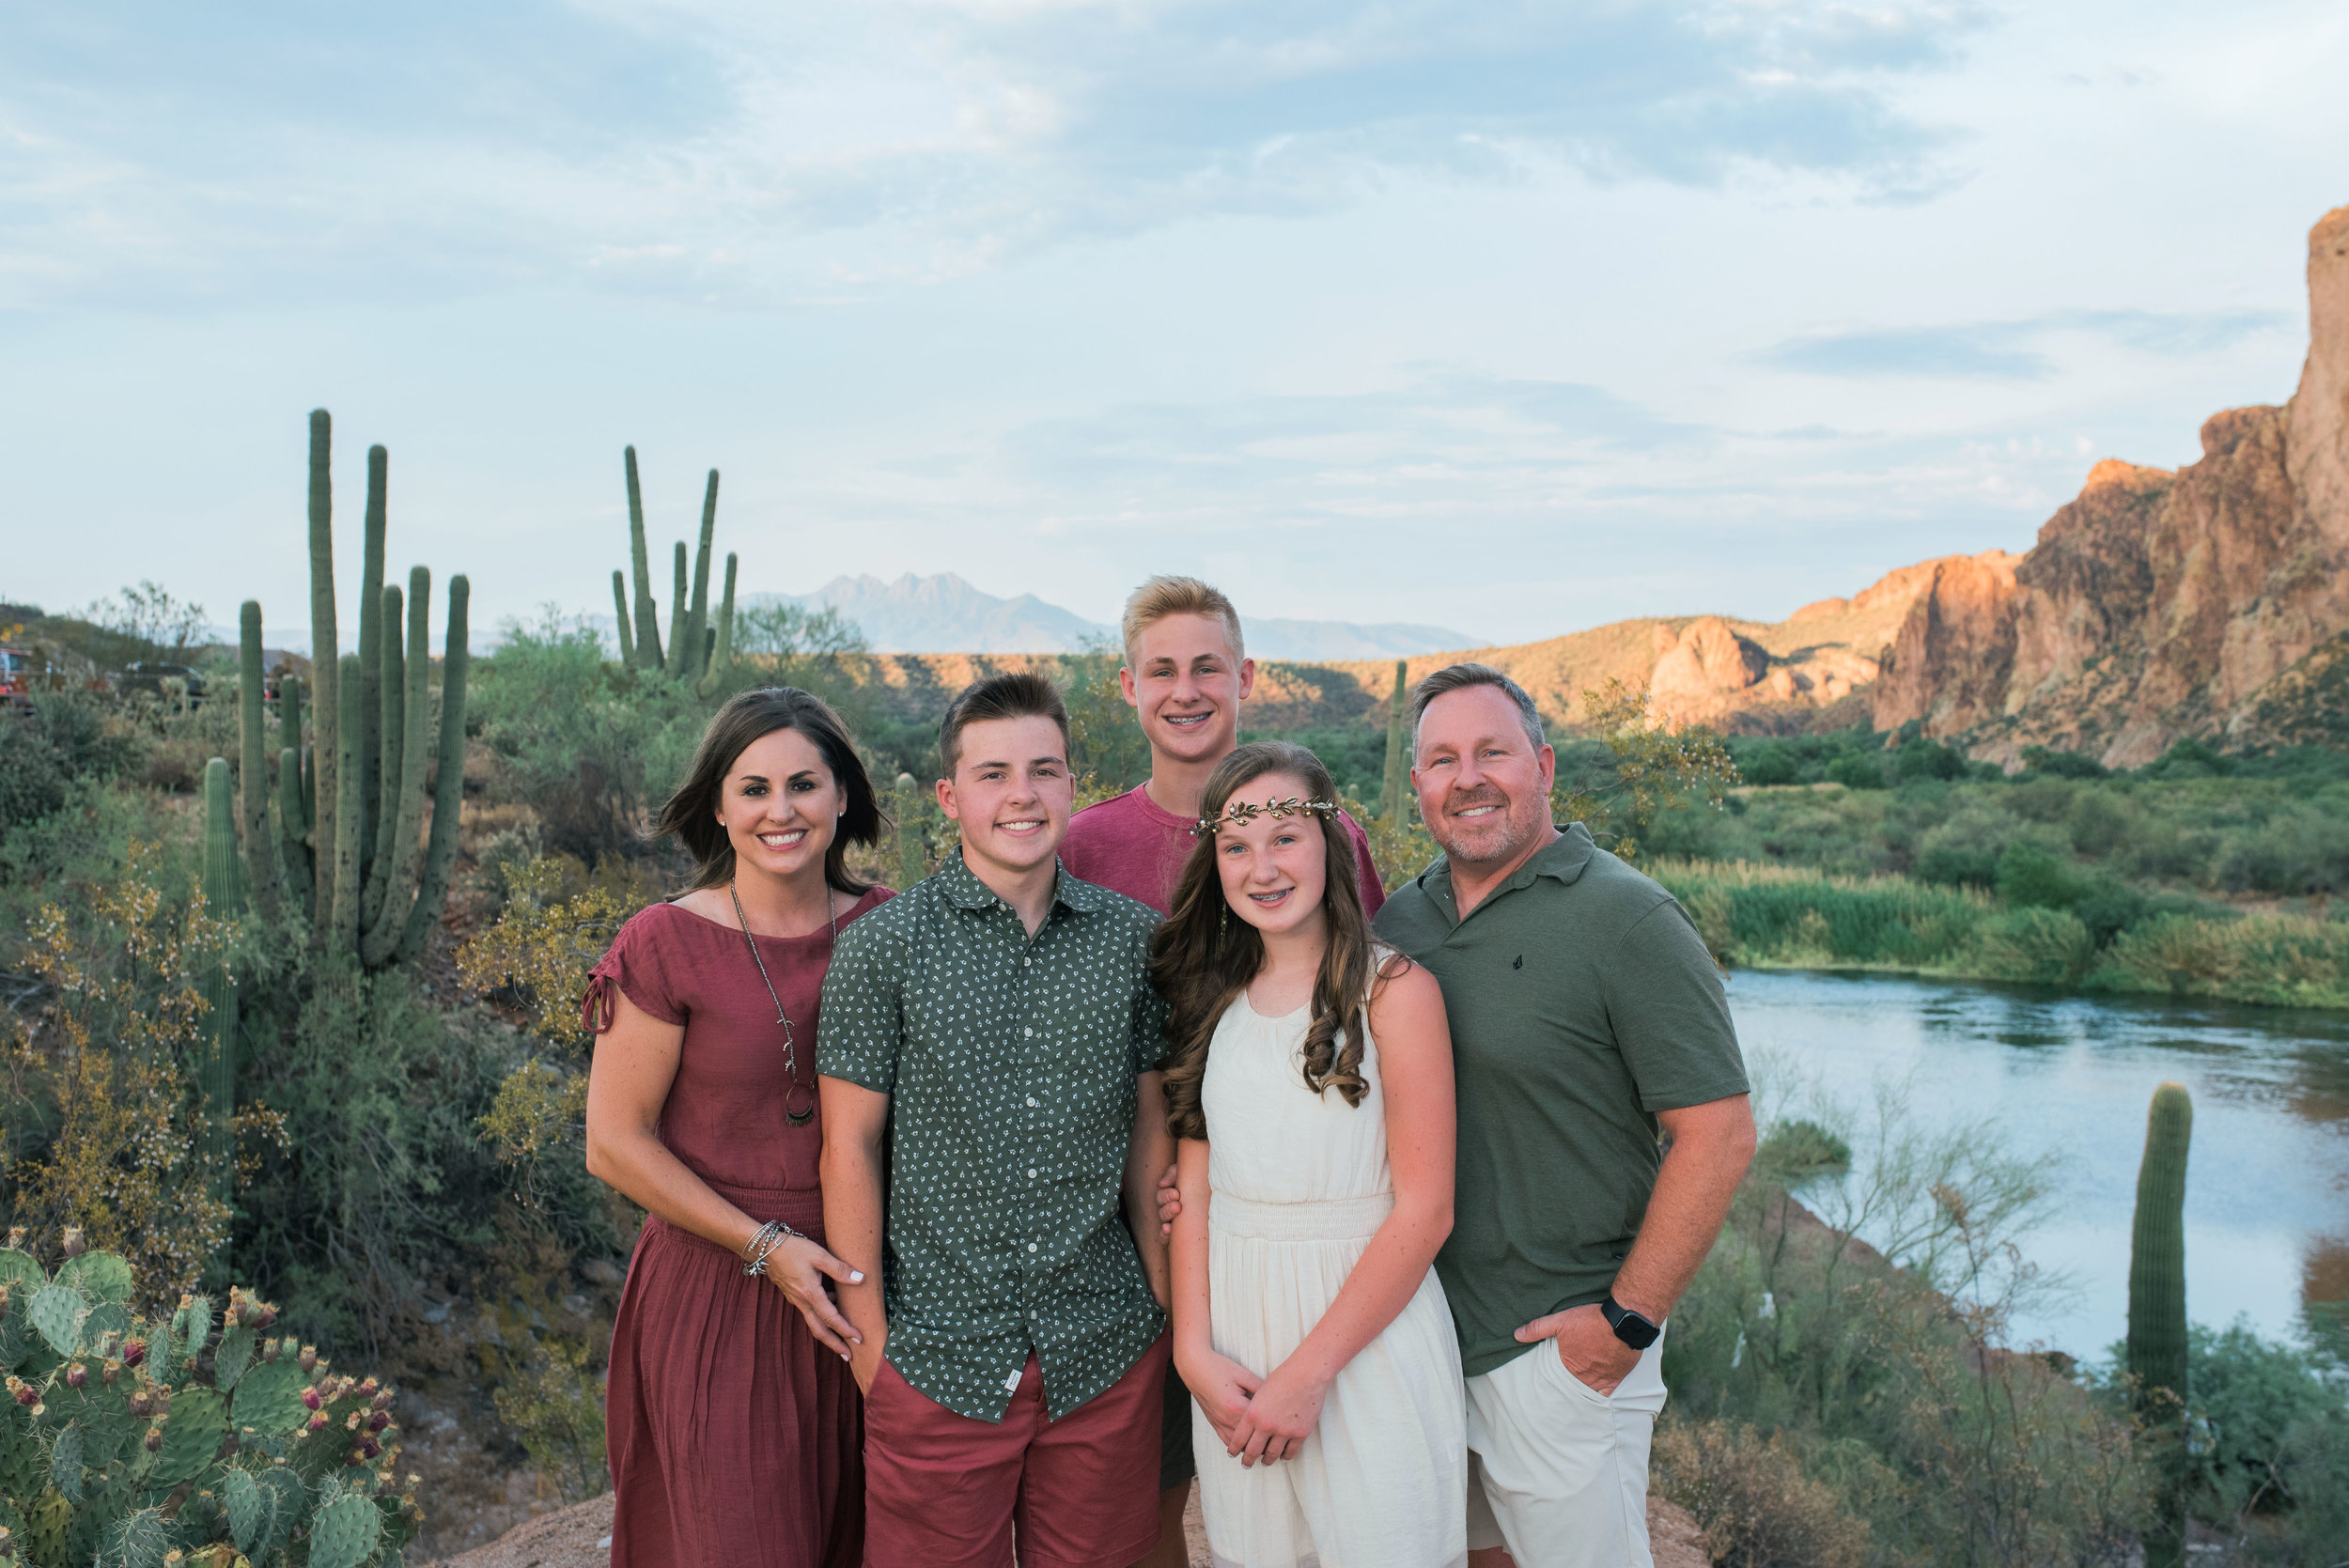 Four Peaks, Cacti, and the Salt River surround this beautiful family.